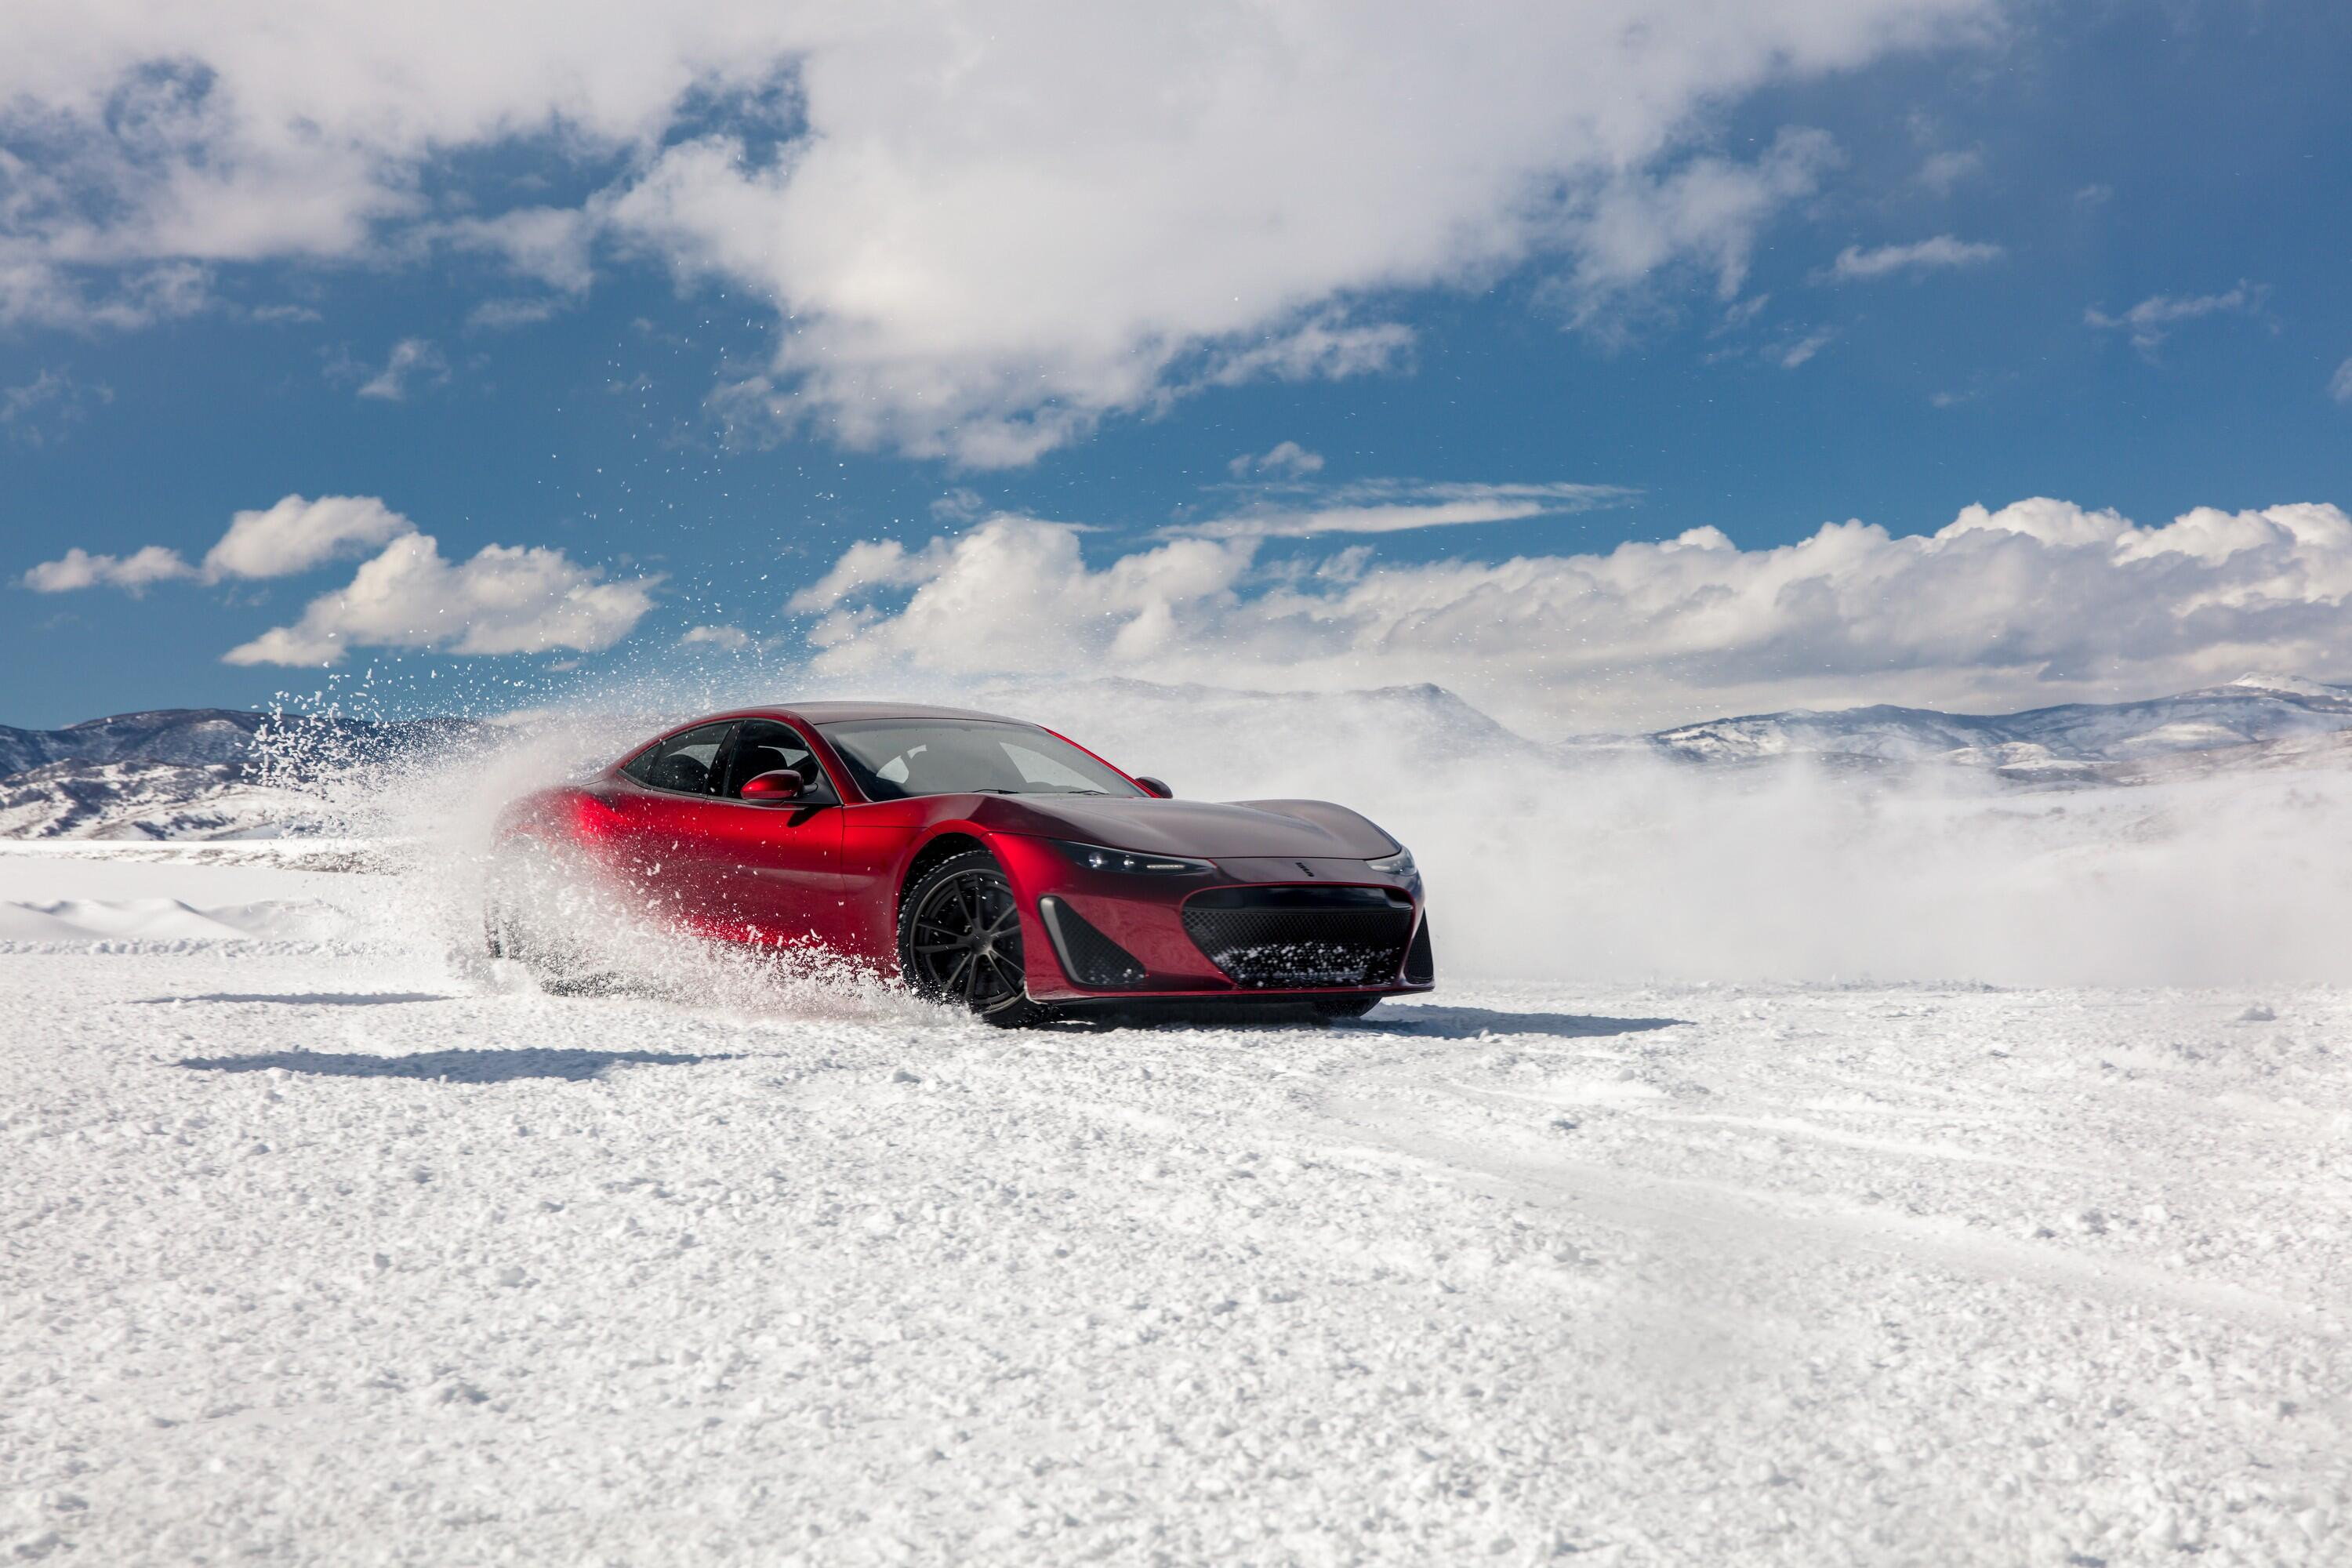 drako-motors-gte-winter-testing-5